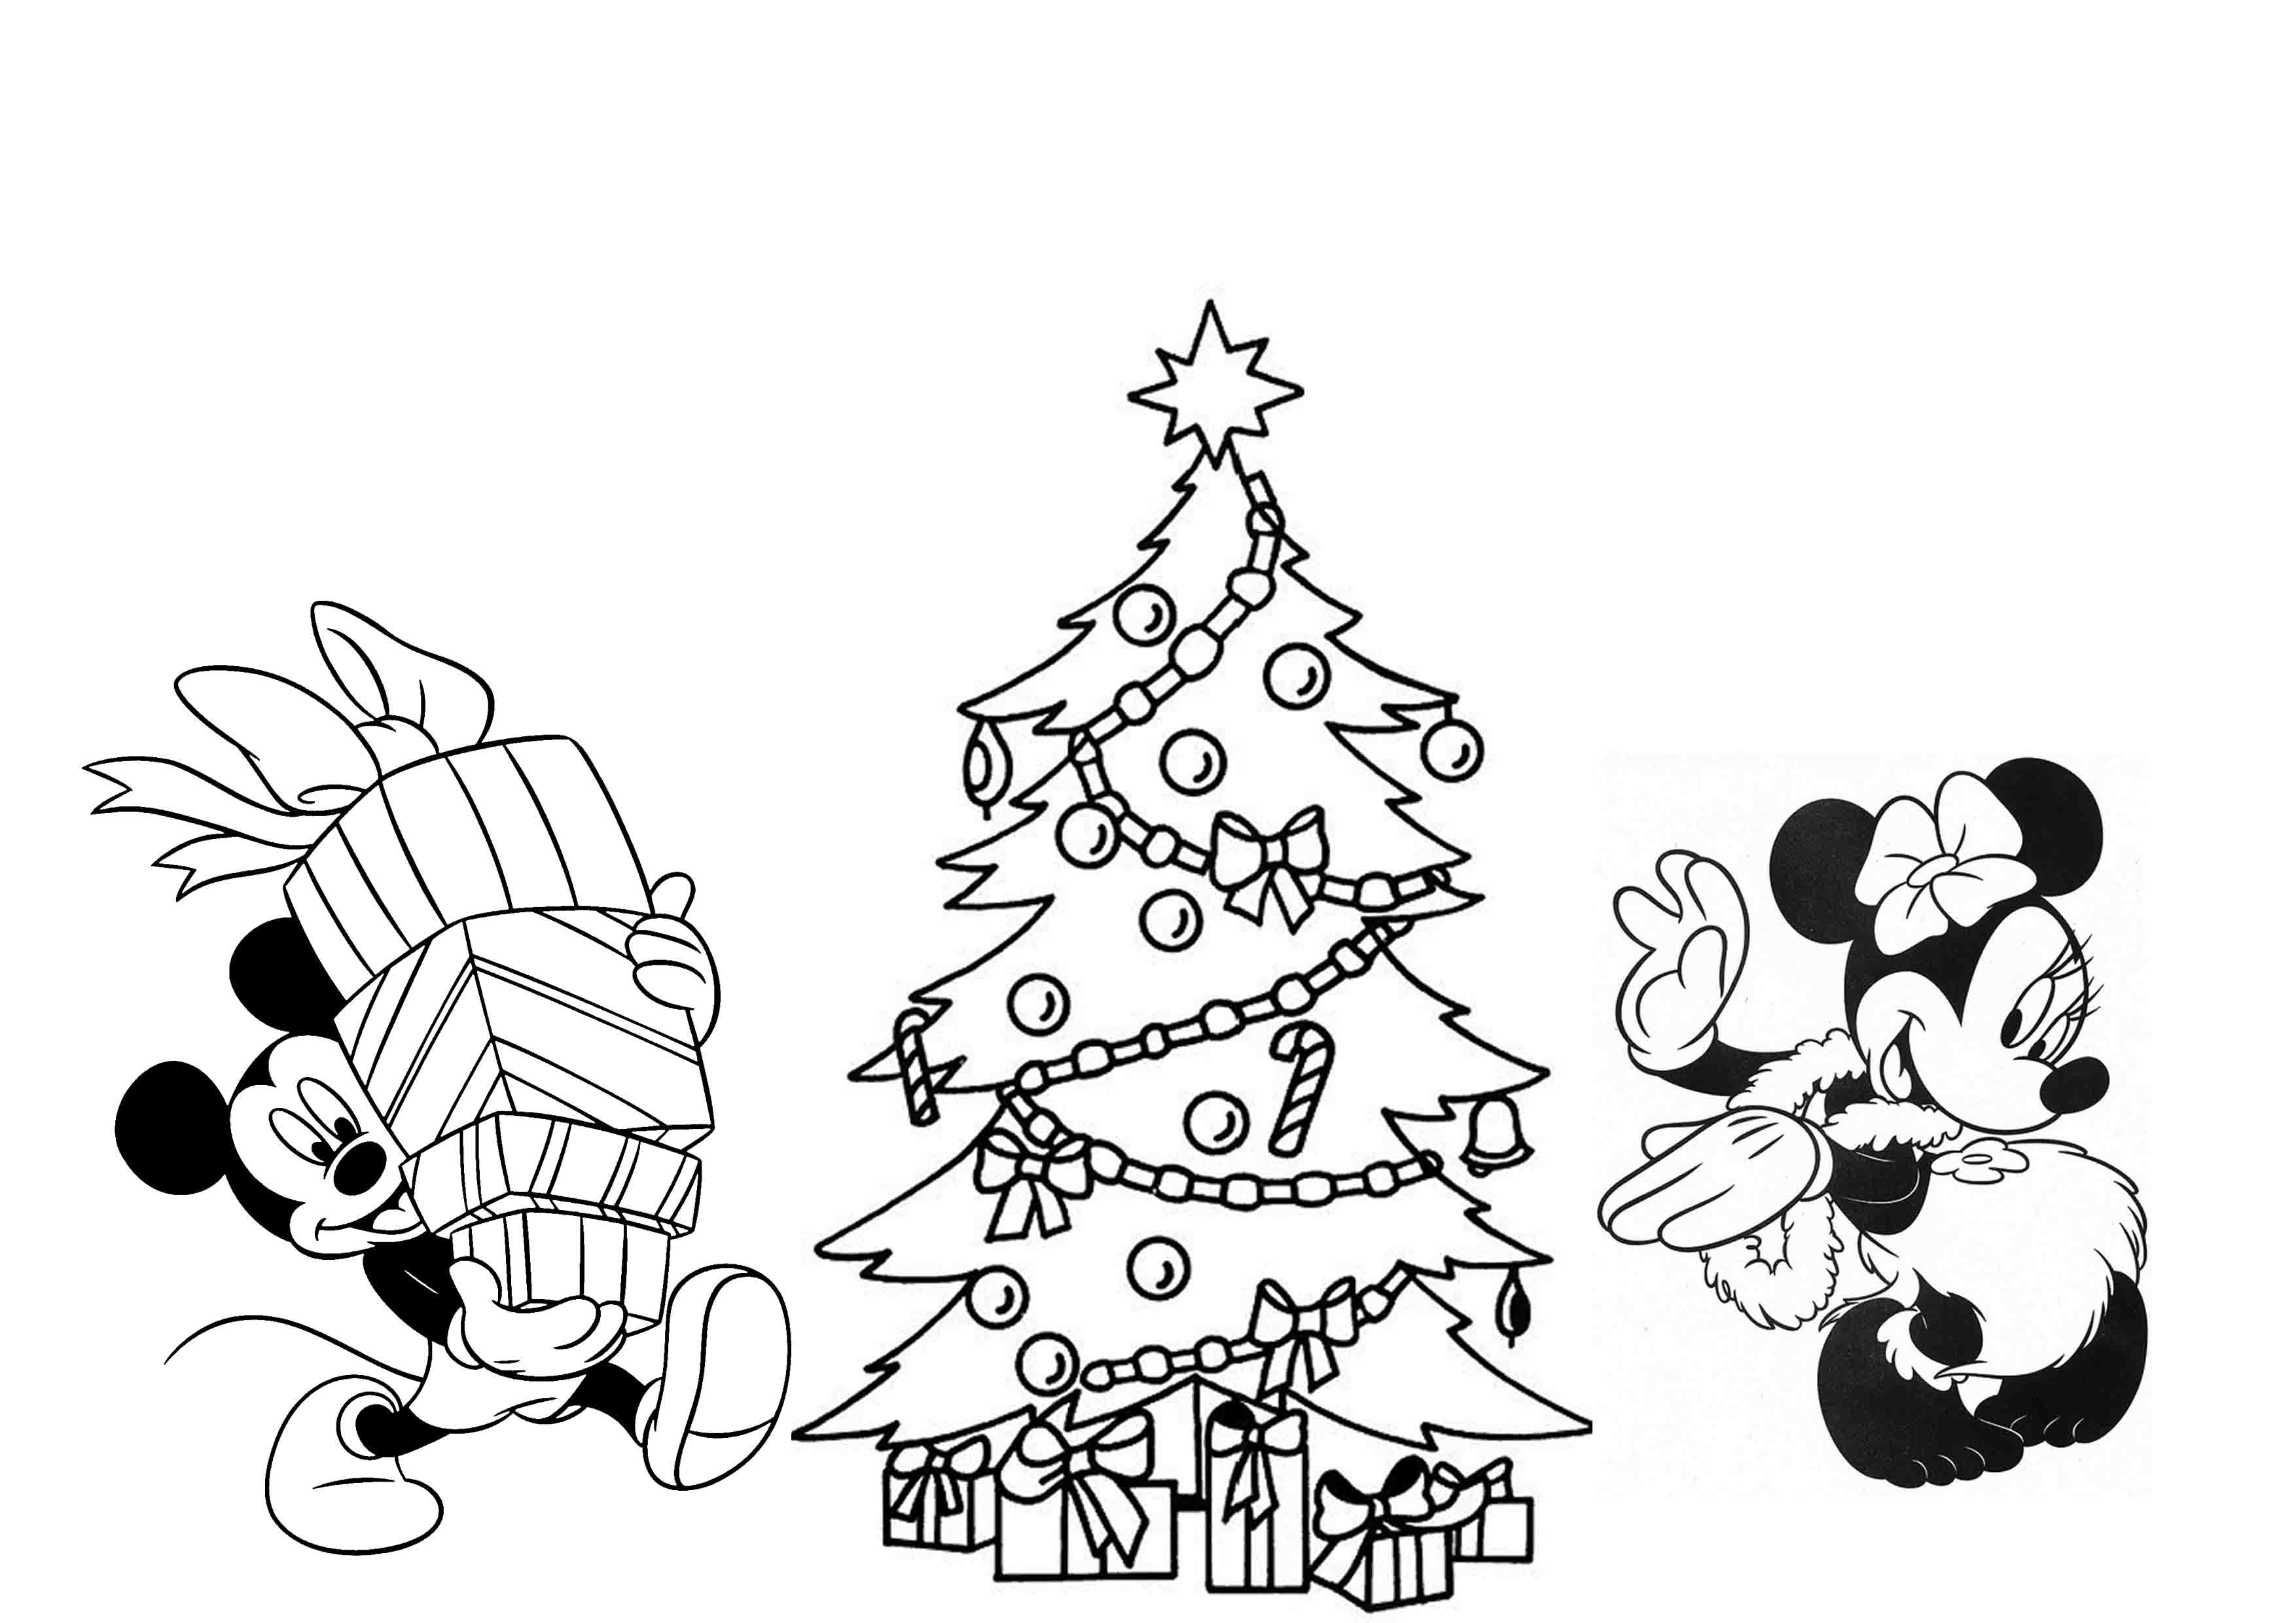 Coloring Pages : Print Download Printable Christmas Coloring Pages - Free Printable Christmas Coloring Pages And Activities